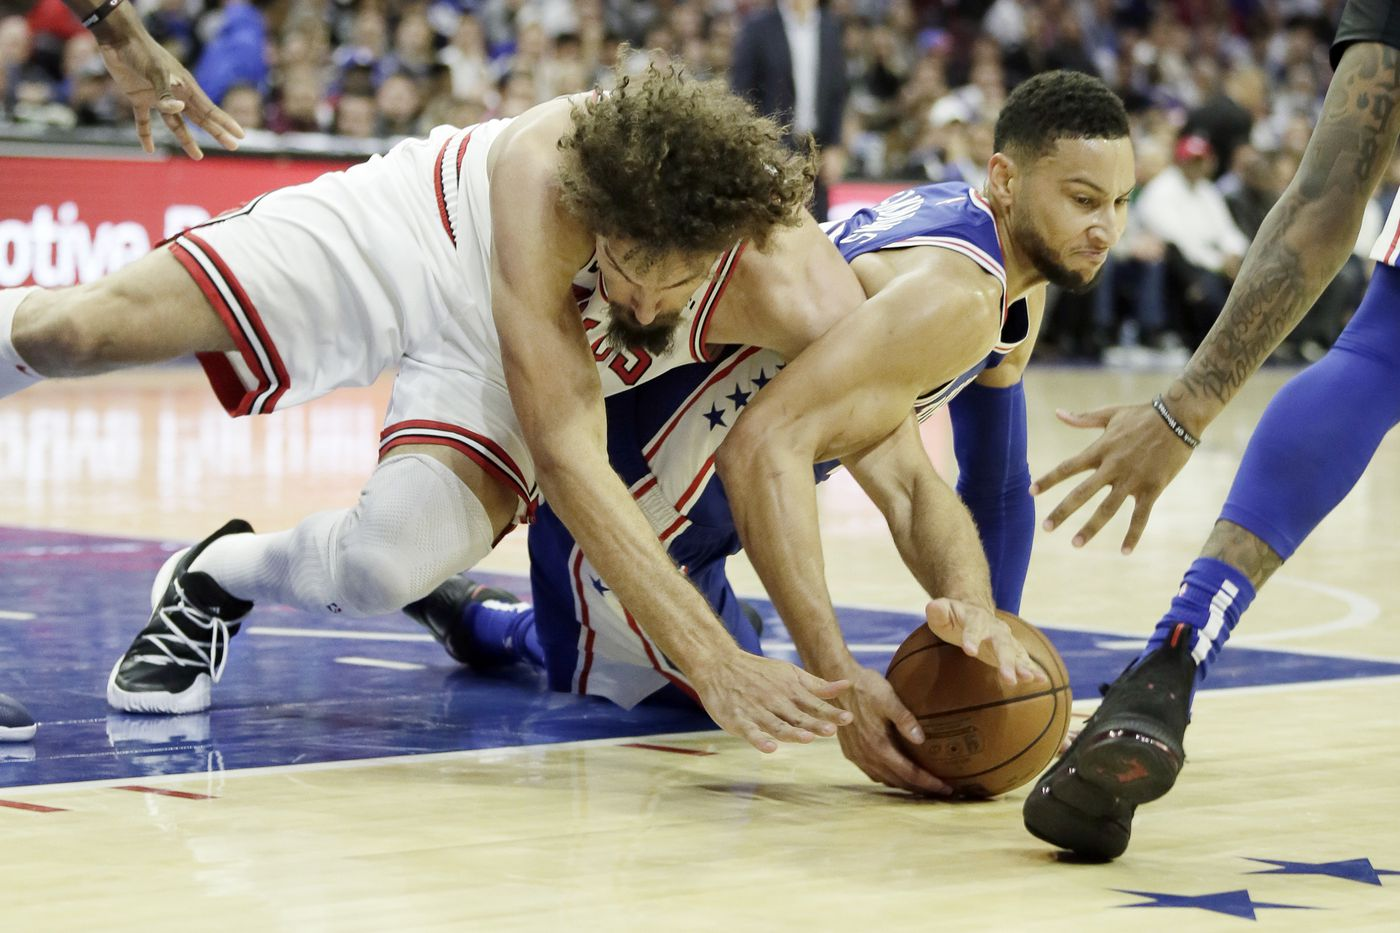 Sixers-Bulls observations, best and worst awards: Ben Simmons, Markelle Fultz, optional defense